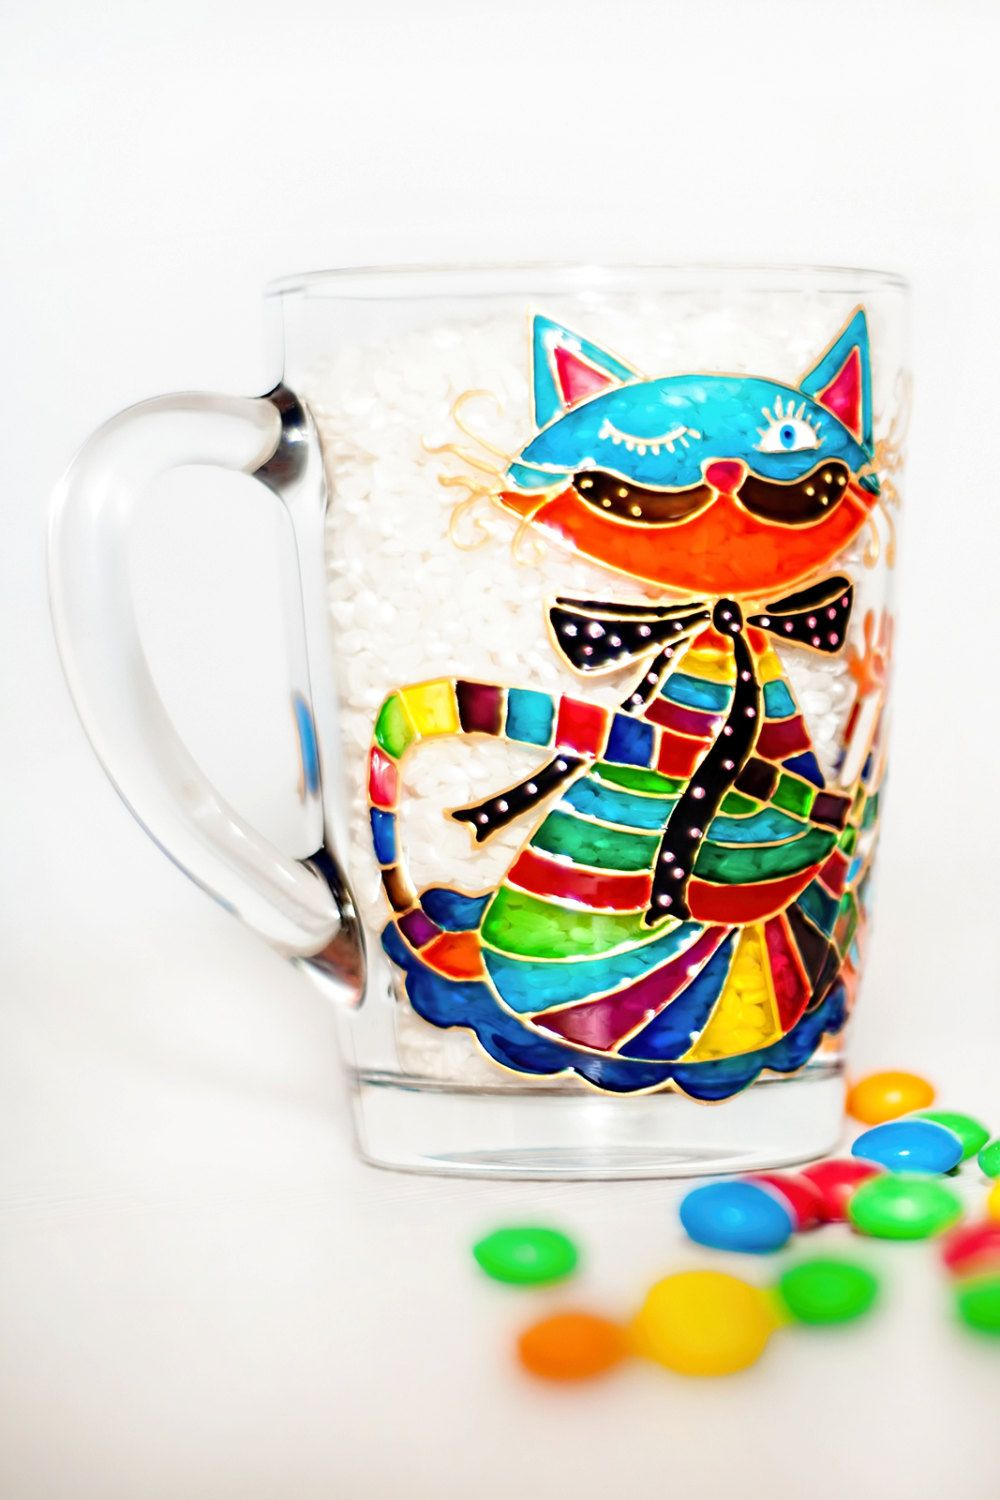 dd4085122c9c Hand painted funny cat on the coffee/tea mug. This cute cat can be a  perfect gift for everyone! This cup can be personalized with the name or  initials.